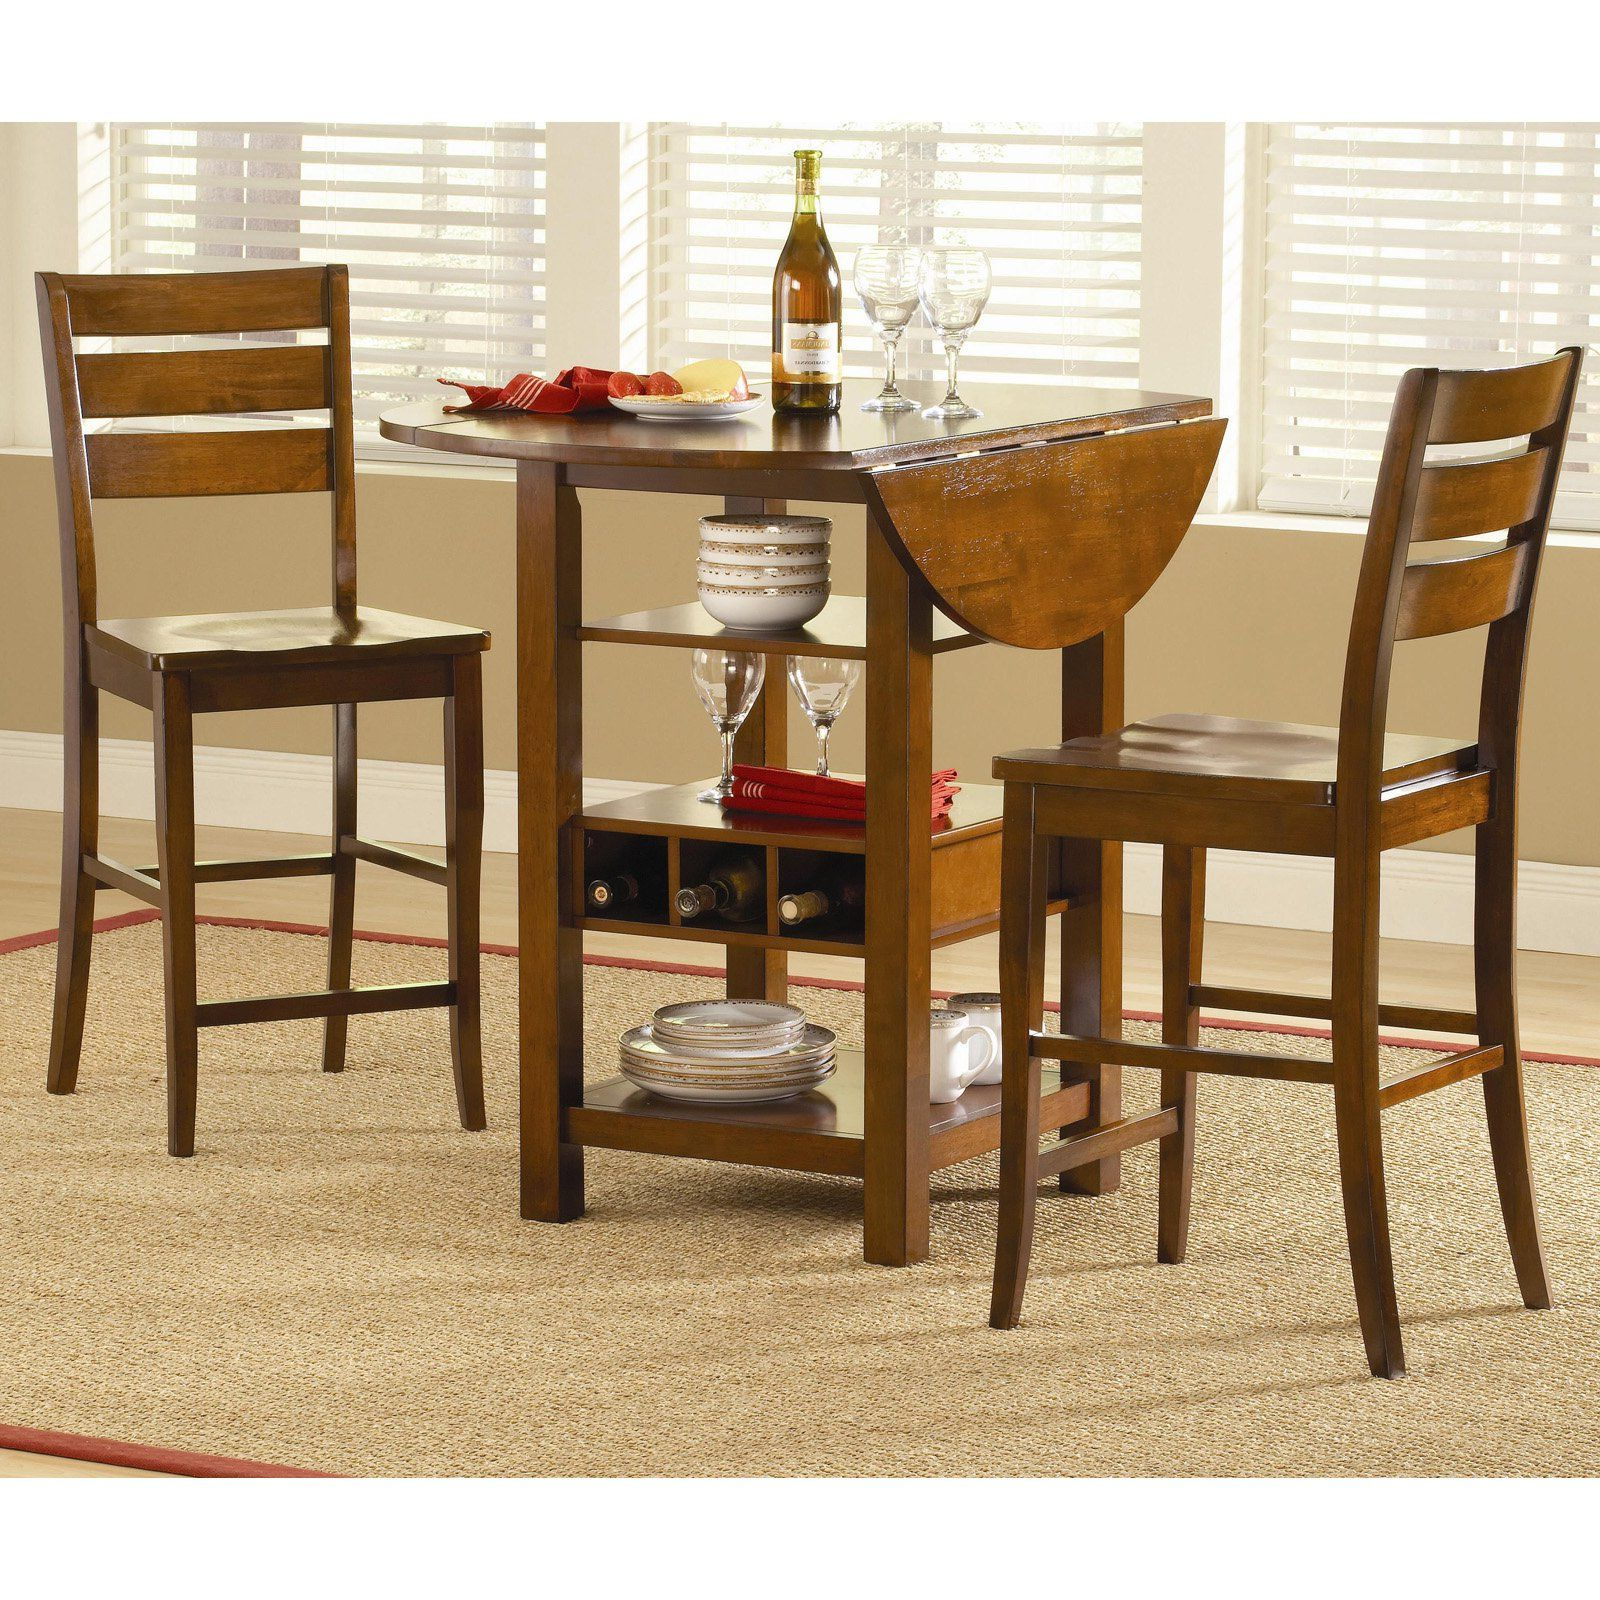 Ridgewood 3 Pc. Counter Height Drop Leaf Dining Set for Well-liked Mahogany Shayne Drop-Leaf Kitchen Tables